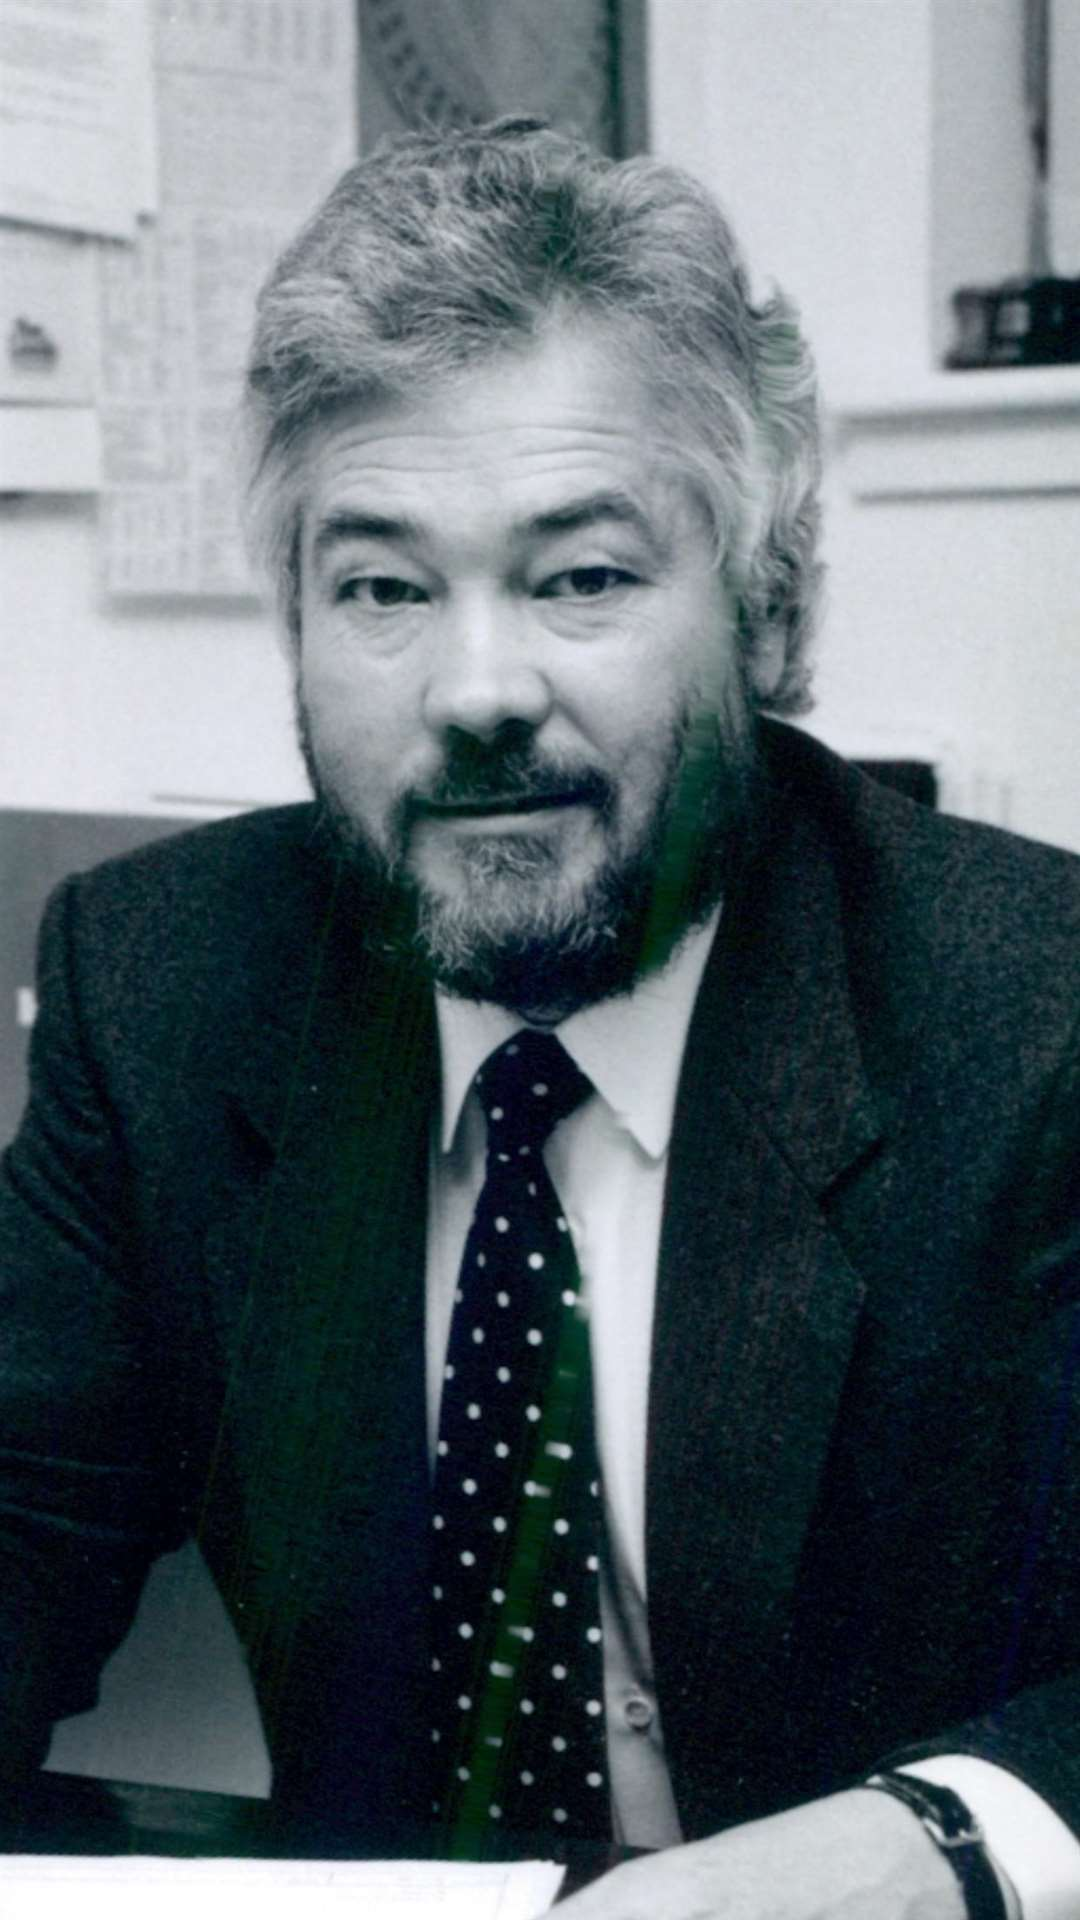 The late Richard Filmer in the late 1980s